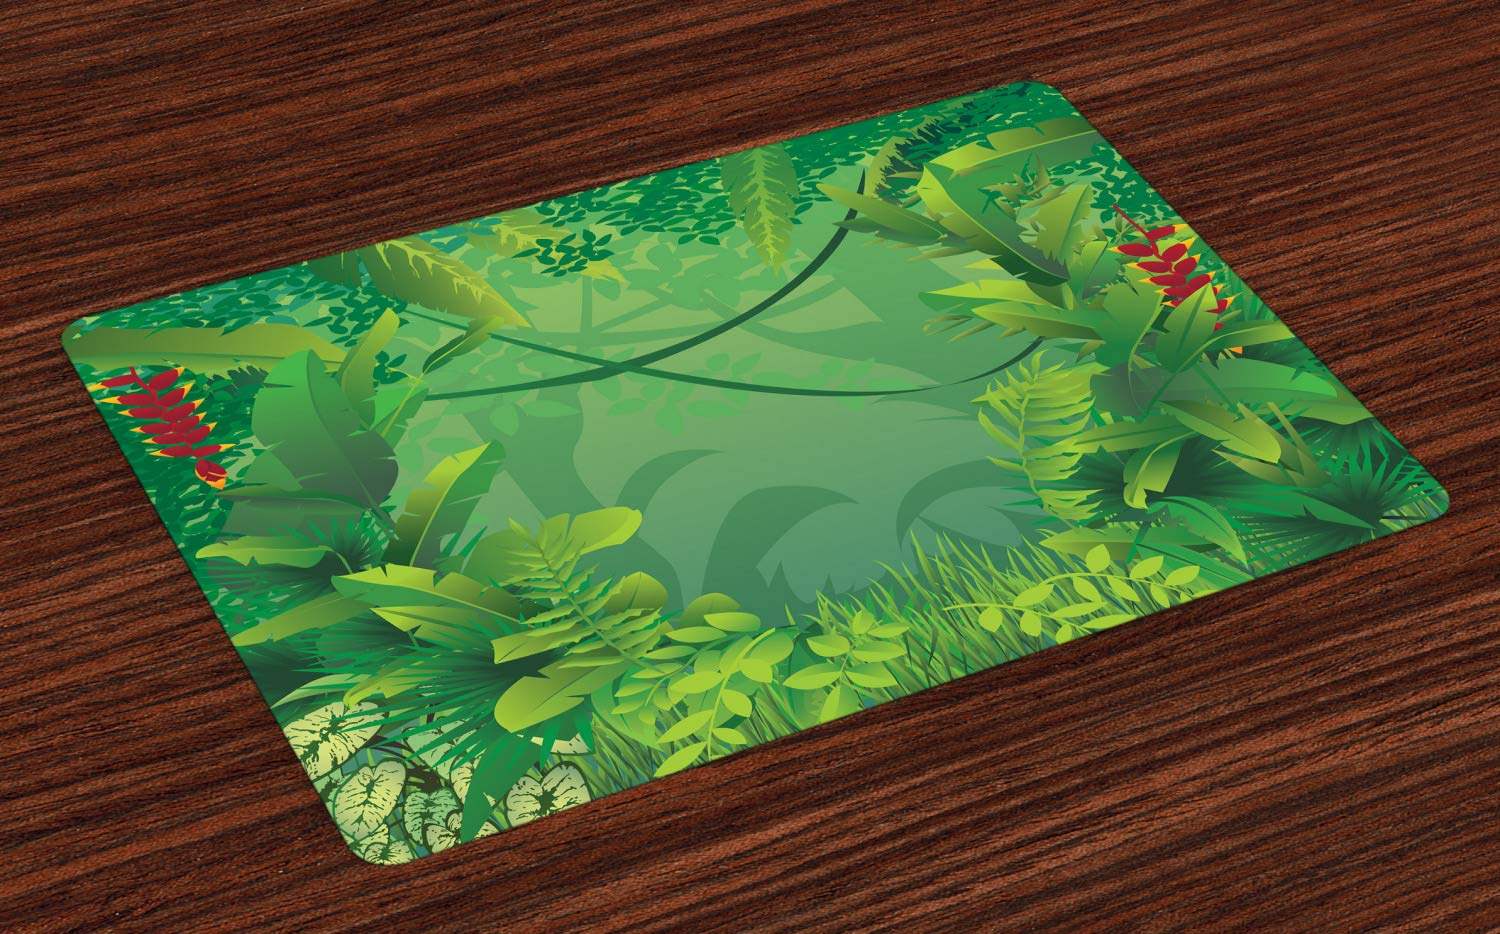 Green Placemats Set of 4 by Ambesonne Washable Fabric Place Mats for Table Decor